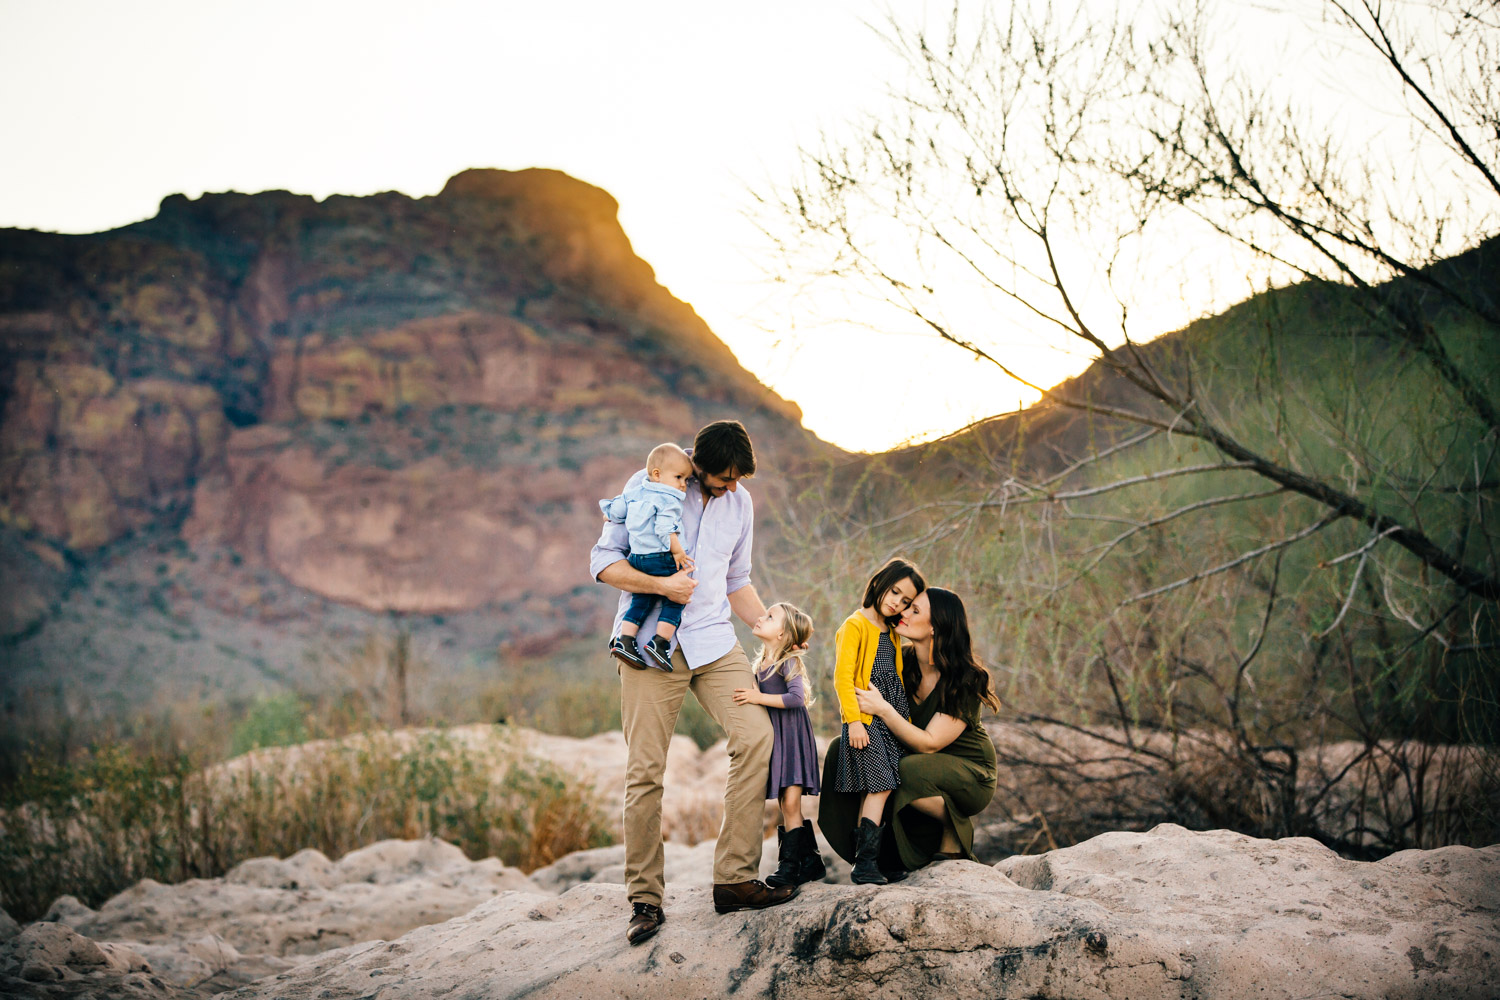 Family portrait sunset Arizona mountains real love candid moment